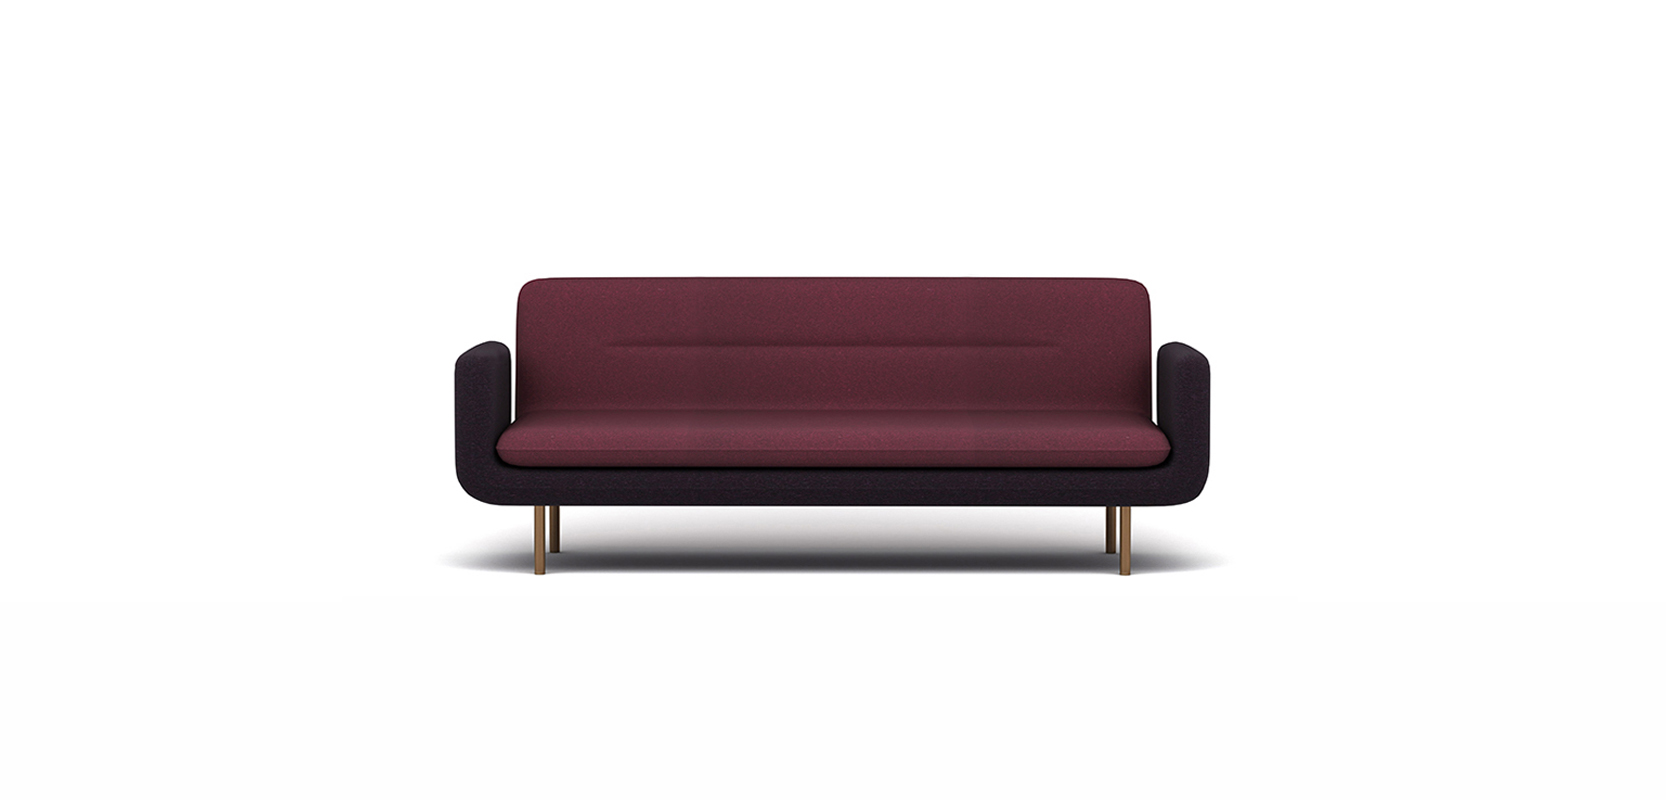 TONE SOFA BRAND:  FRANK CHOU  WEB:  www.frankchou.com Tone Sofa is a combination of fabric with metal, creating an unique sense of light. Simple and clean steady style is suitable for different decoration and more visually enjoyable.